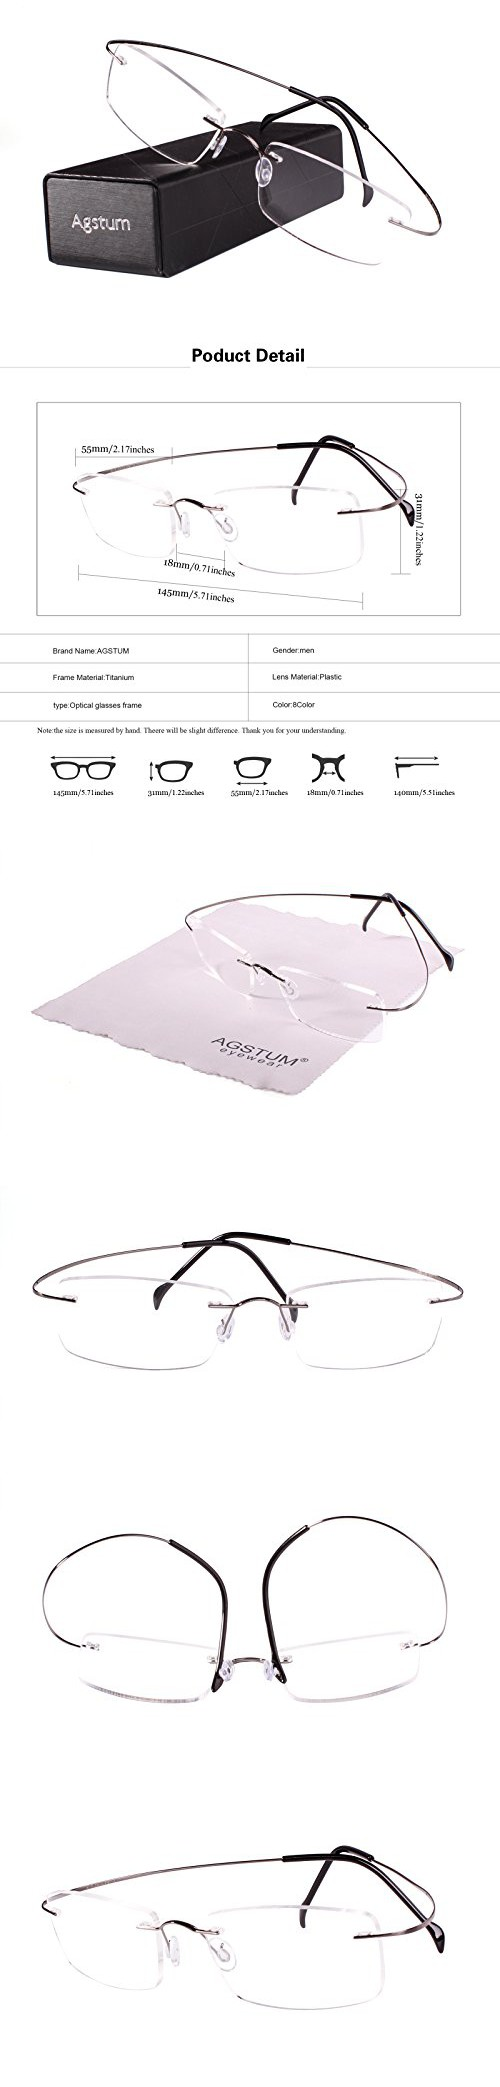 22b66bf3ef Agstum Pure Titanium Rimless Frame Prescription Hingeless Eyeglasses Rx  (Gun metal